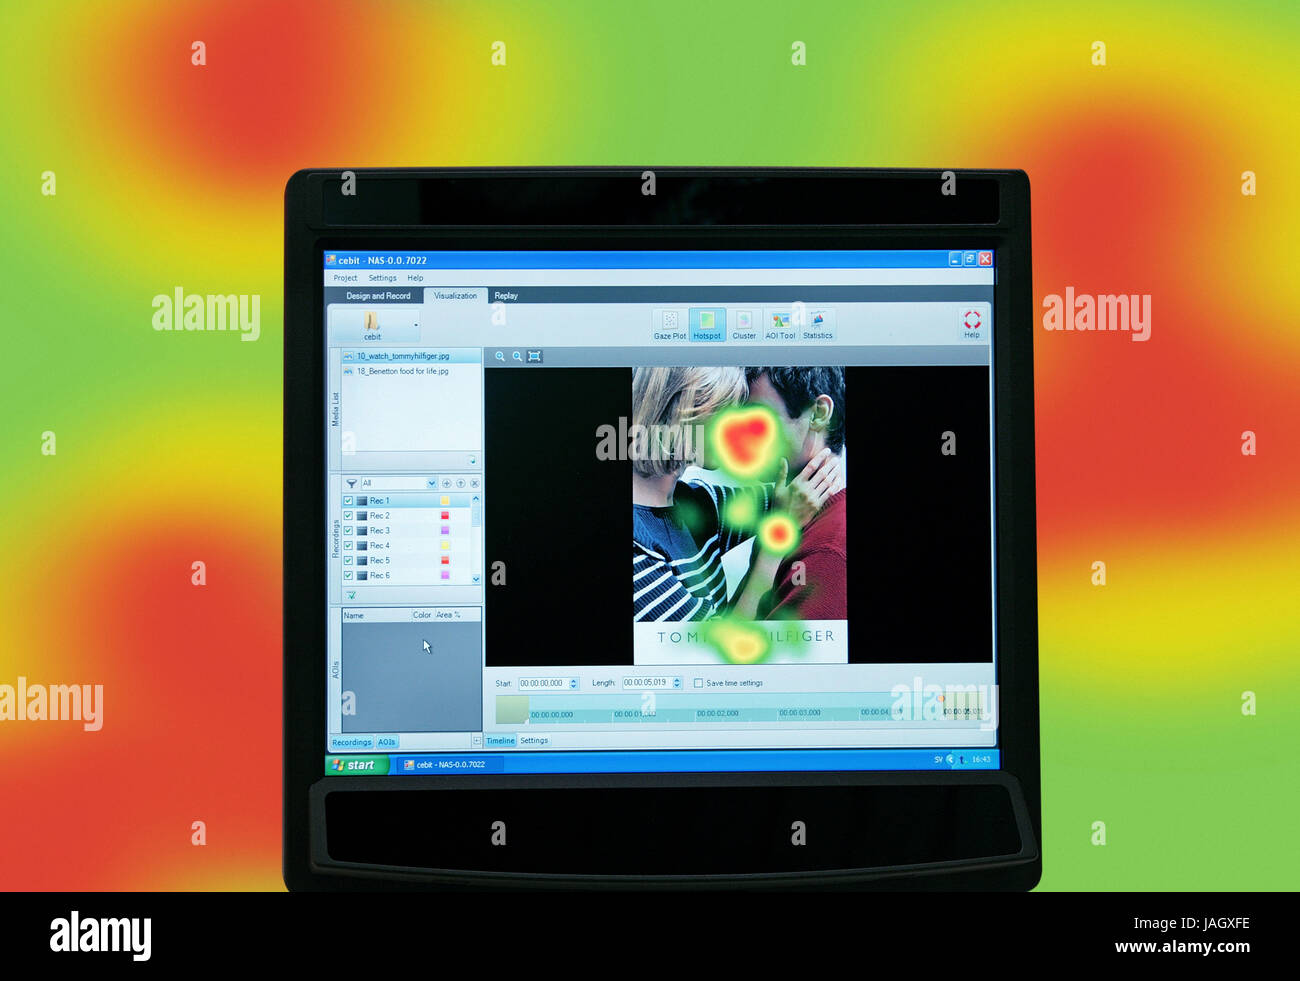 Okulographie,view motion registration for advertising tests and web site optimisation, - Stock Image